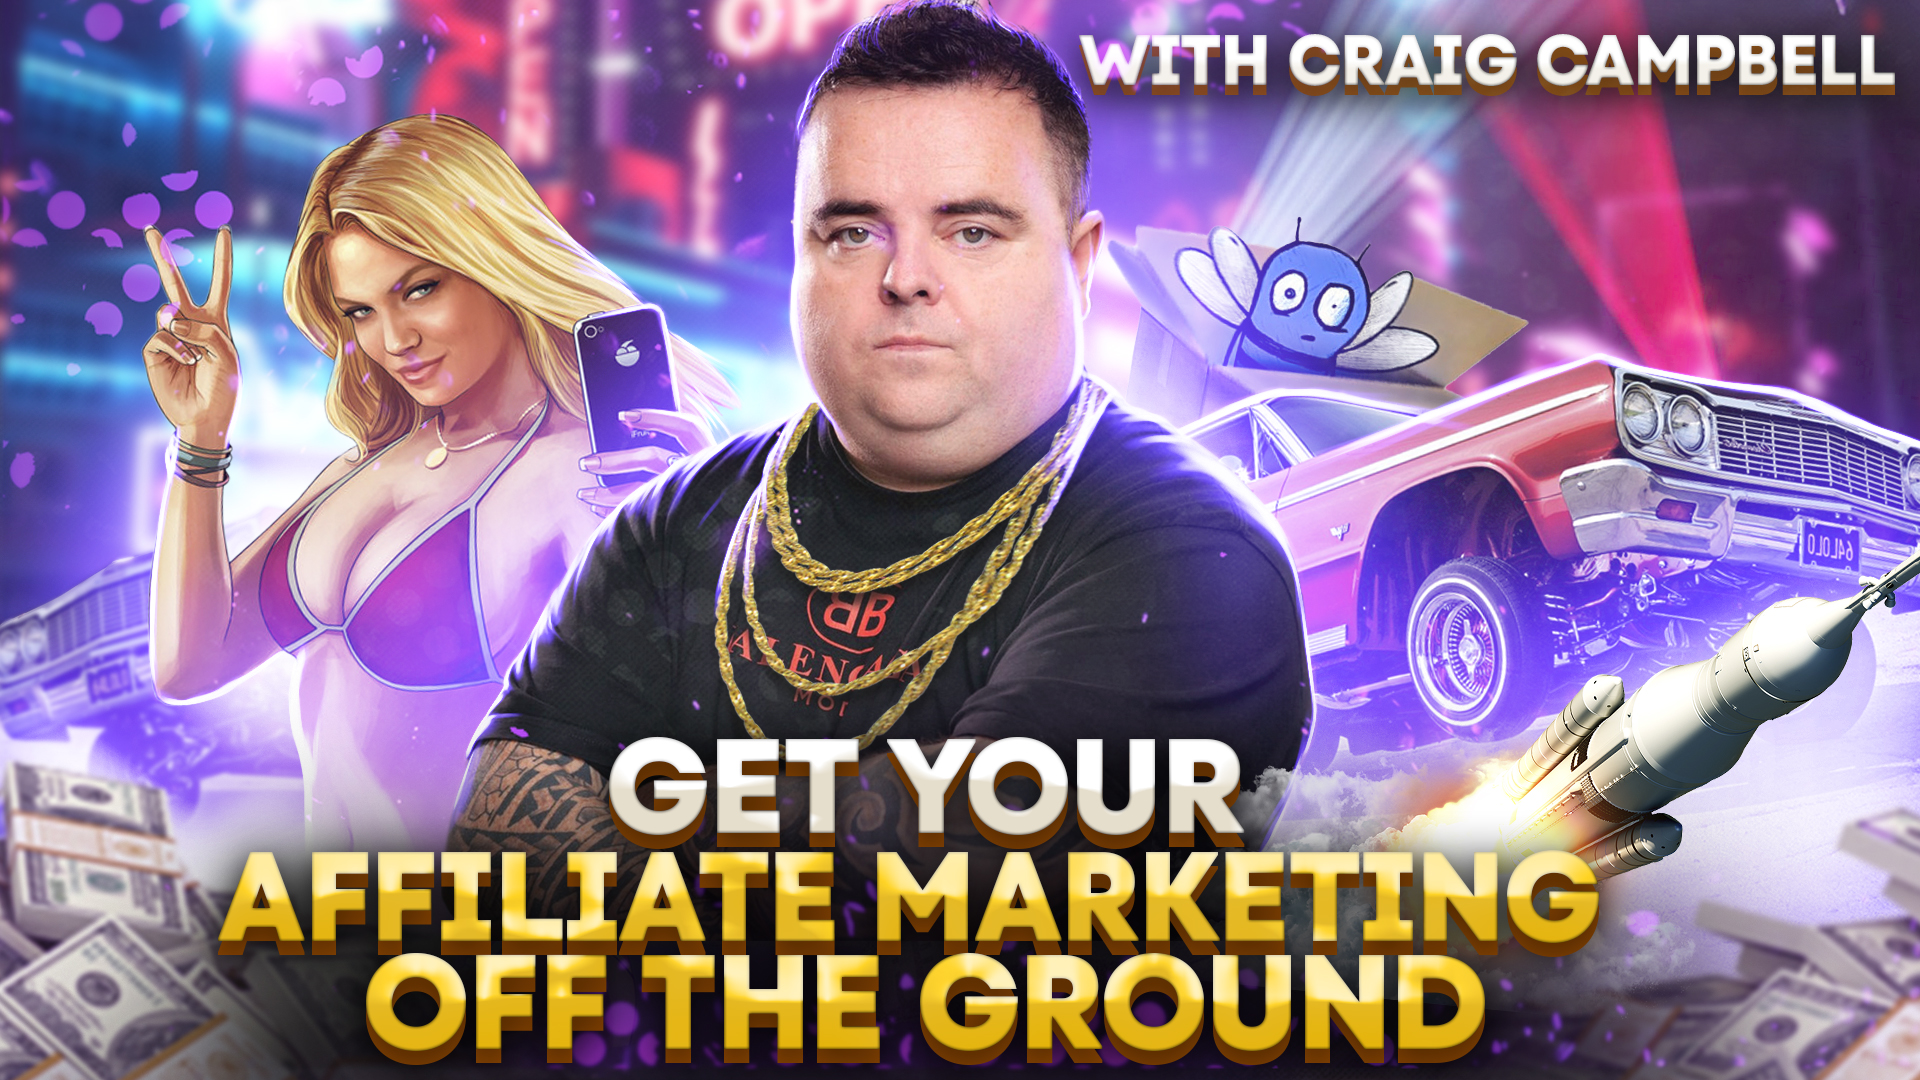 Get your affiliate marketing off the ground with Craig Campbell